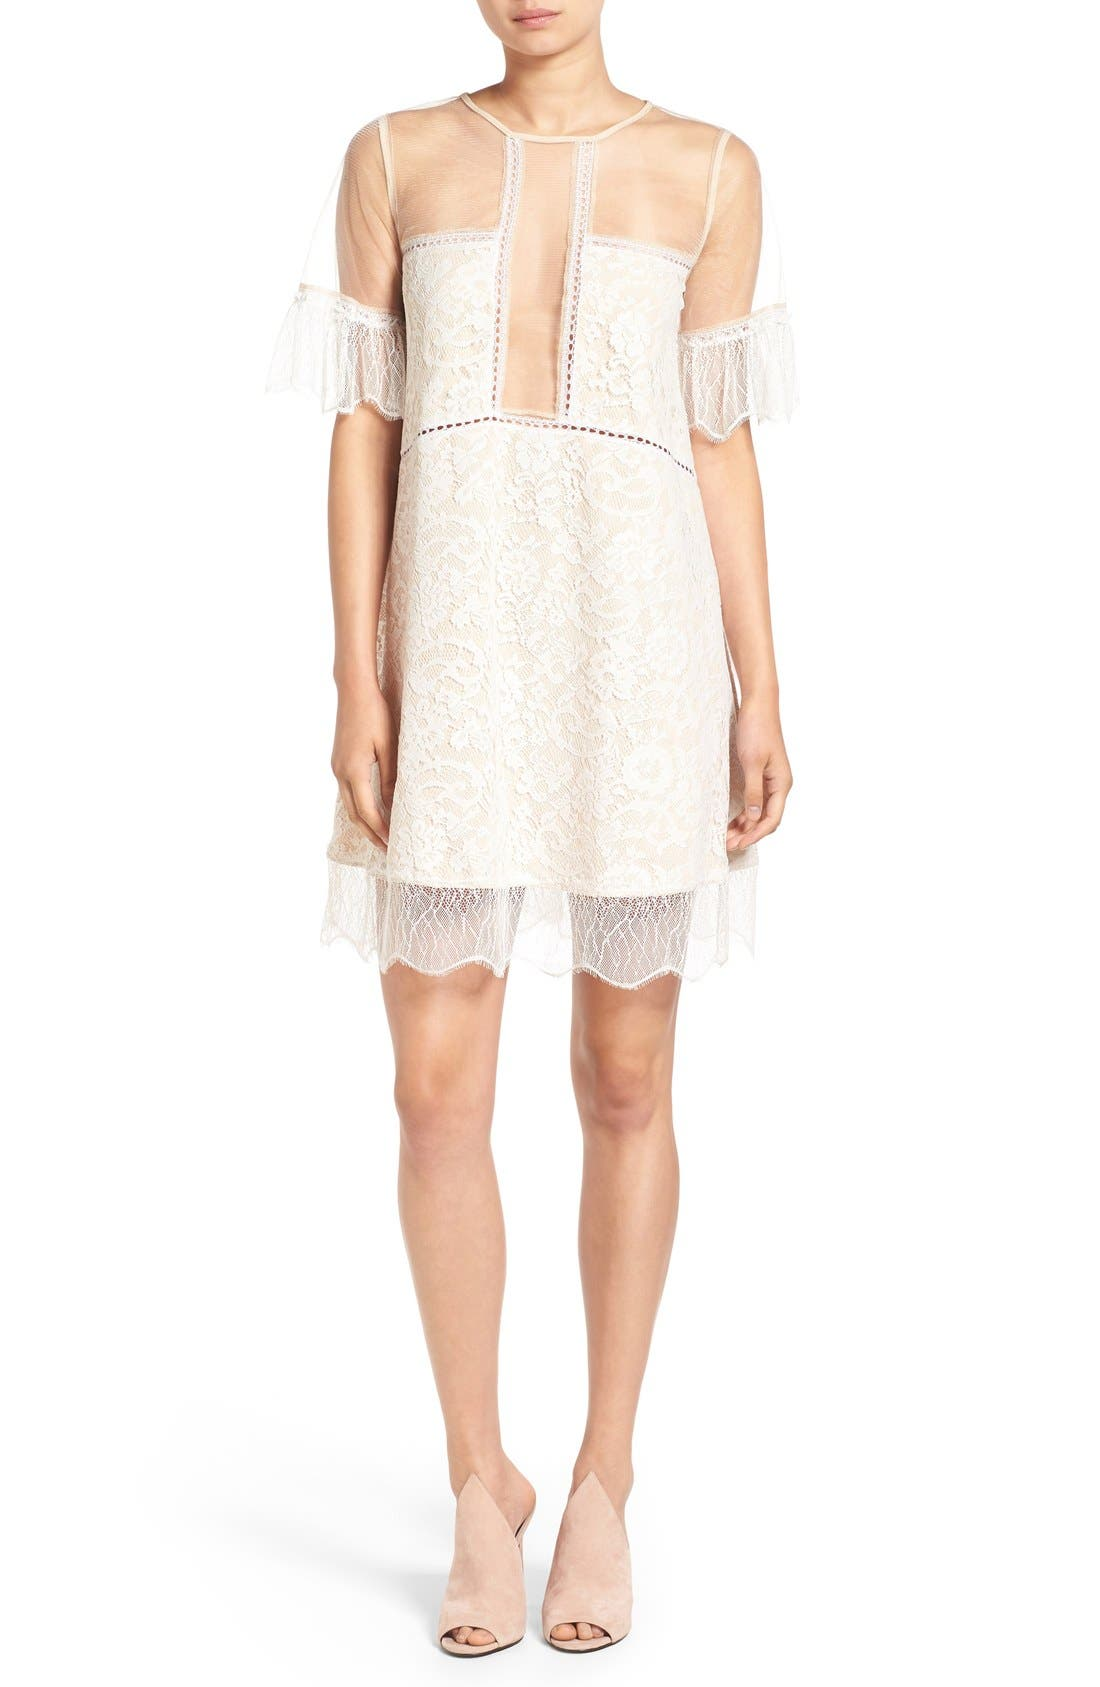 Alternate Image 1 Selected - KENDALL + KYLIE Lace Panel Trapeze Dress